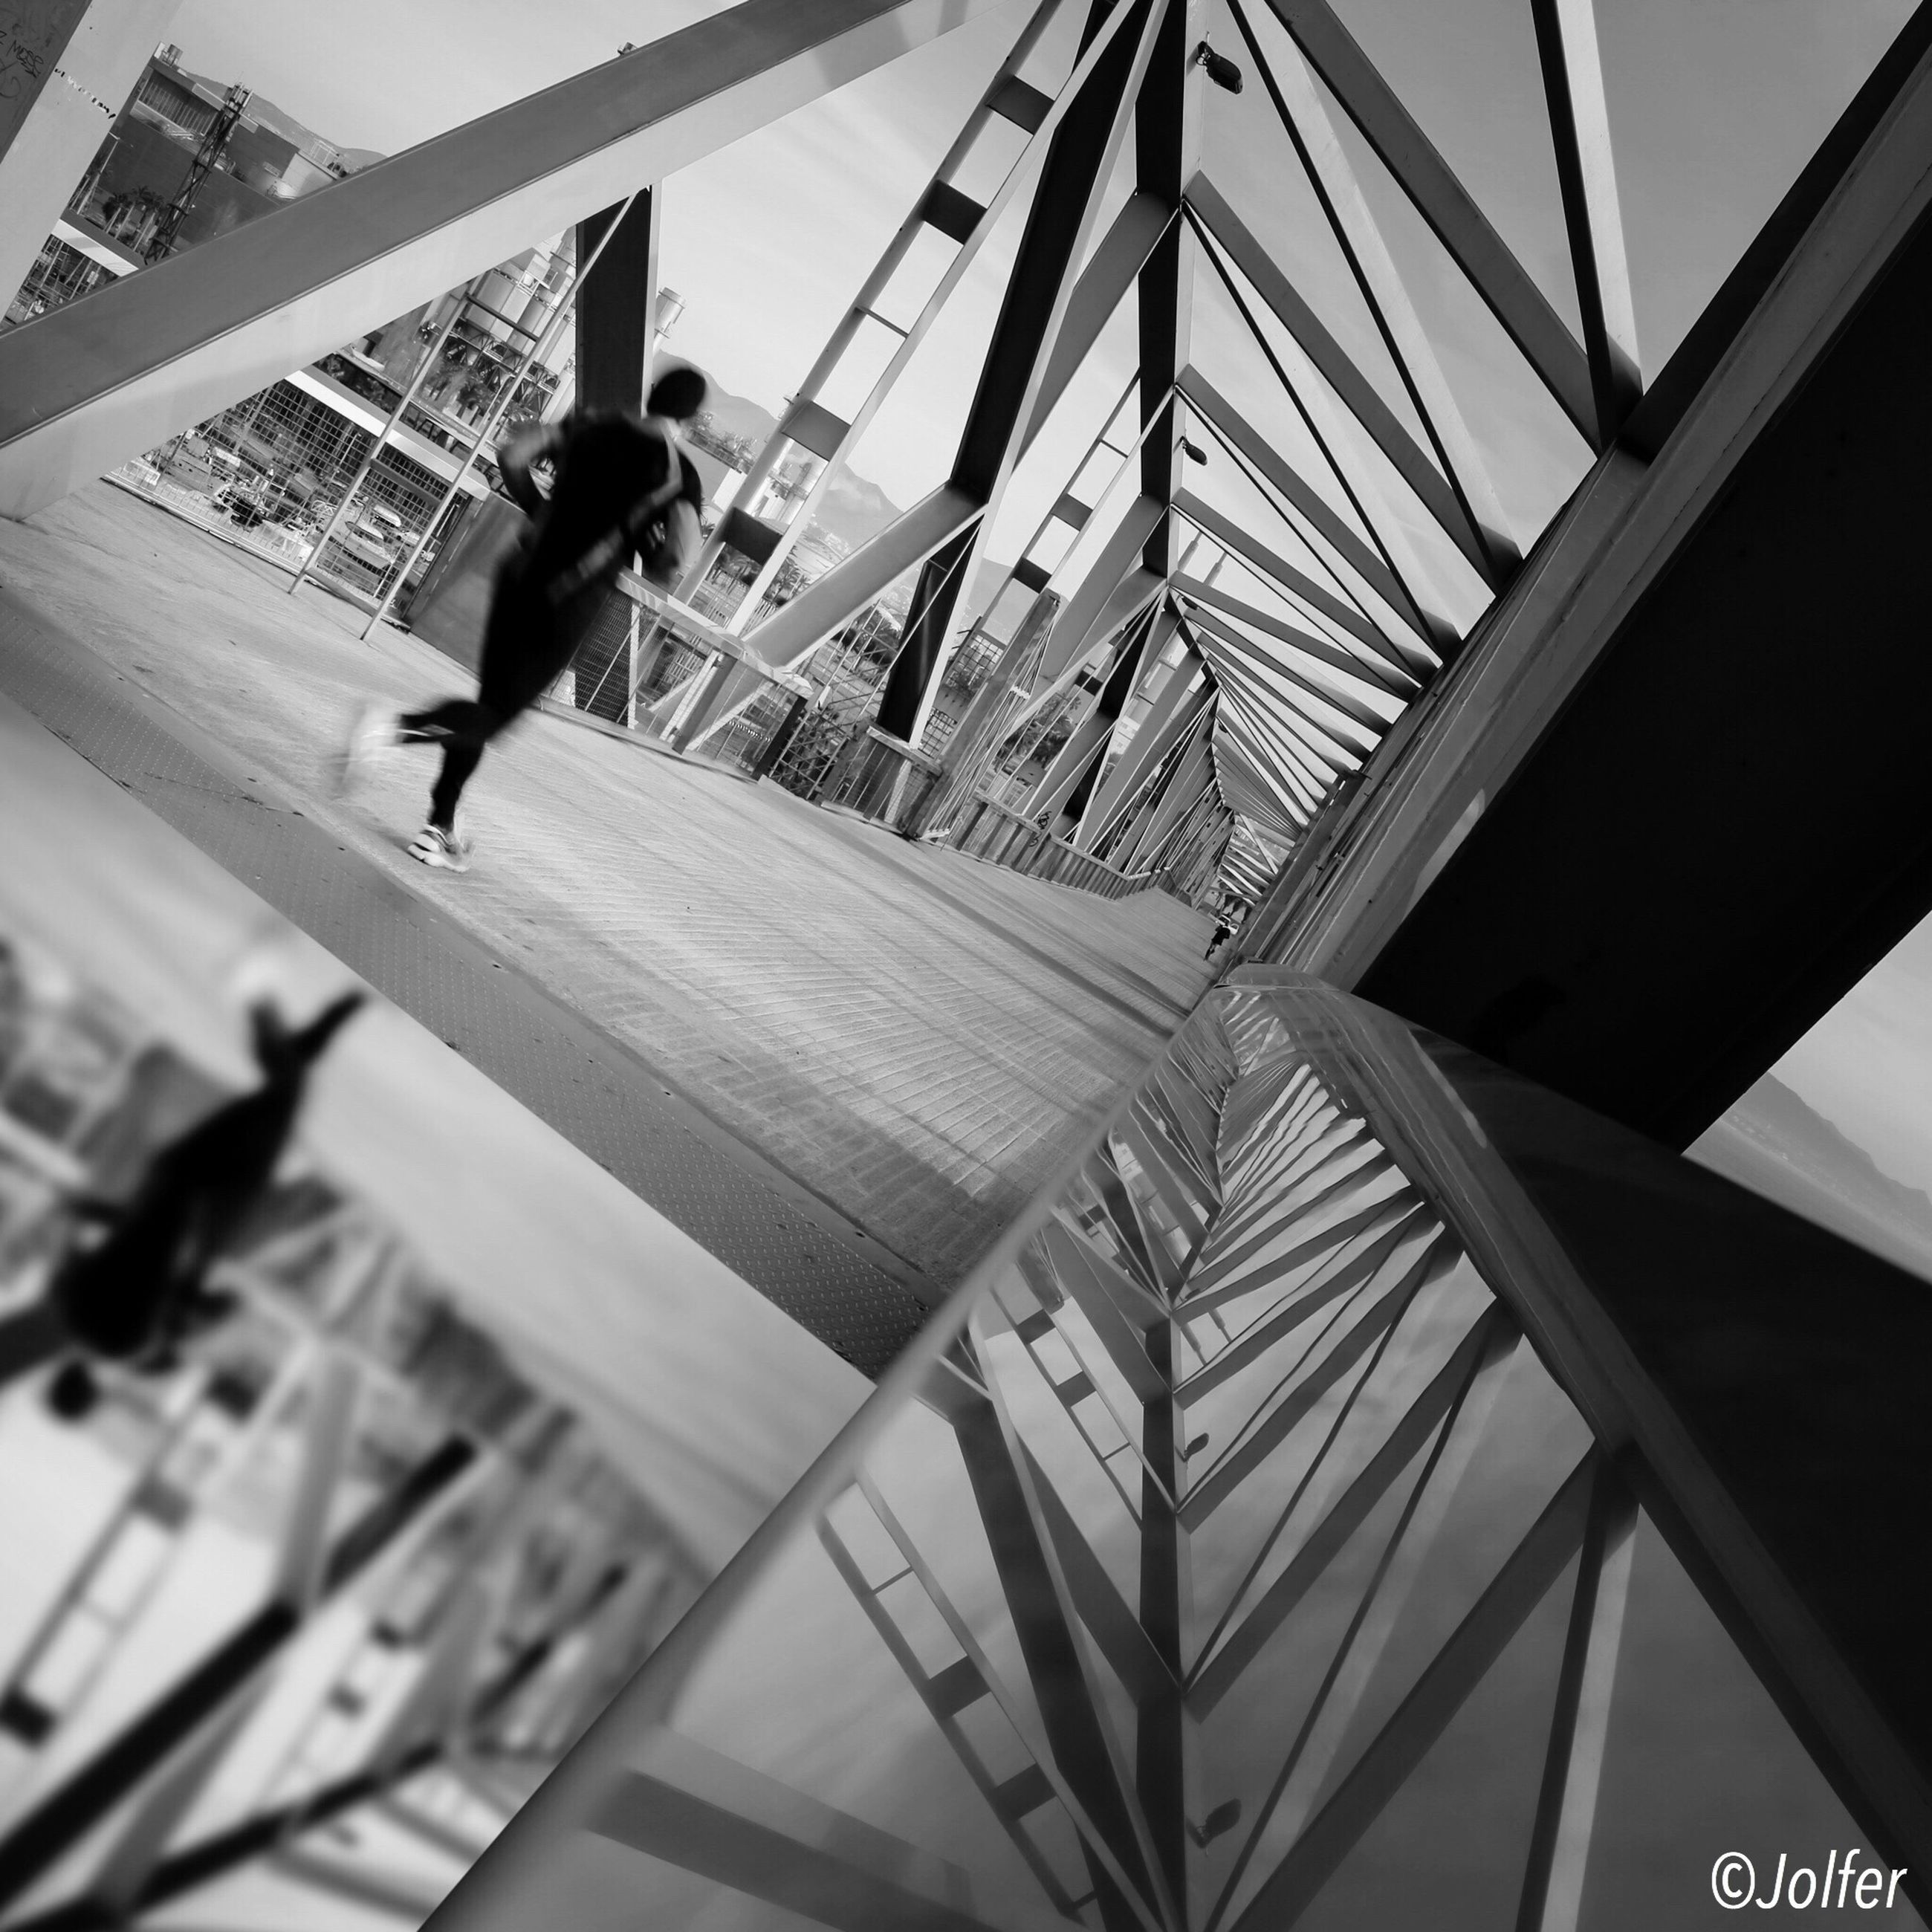 men, lifestyles, leisure activity, built structure, low angle view, architecture, full length, railing, bridge - man made structure, sky, person, connection, transportation, walking, silhouette, day, travel, engineering